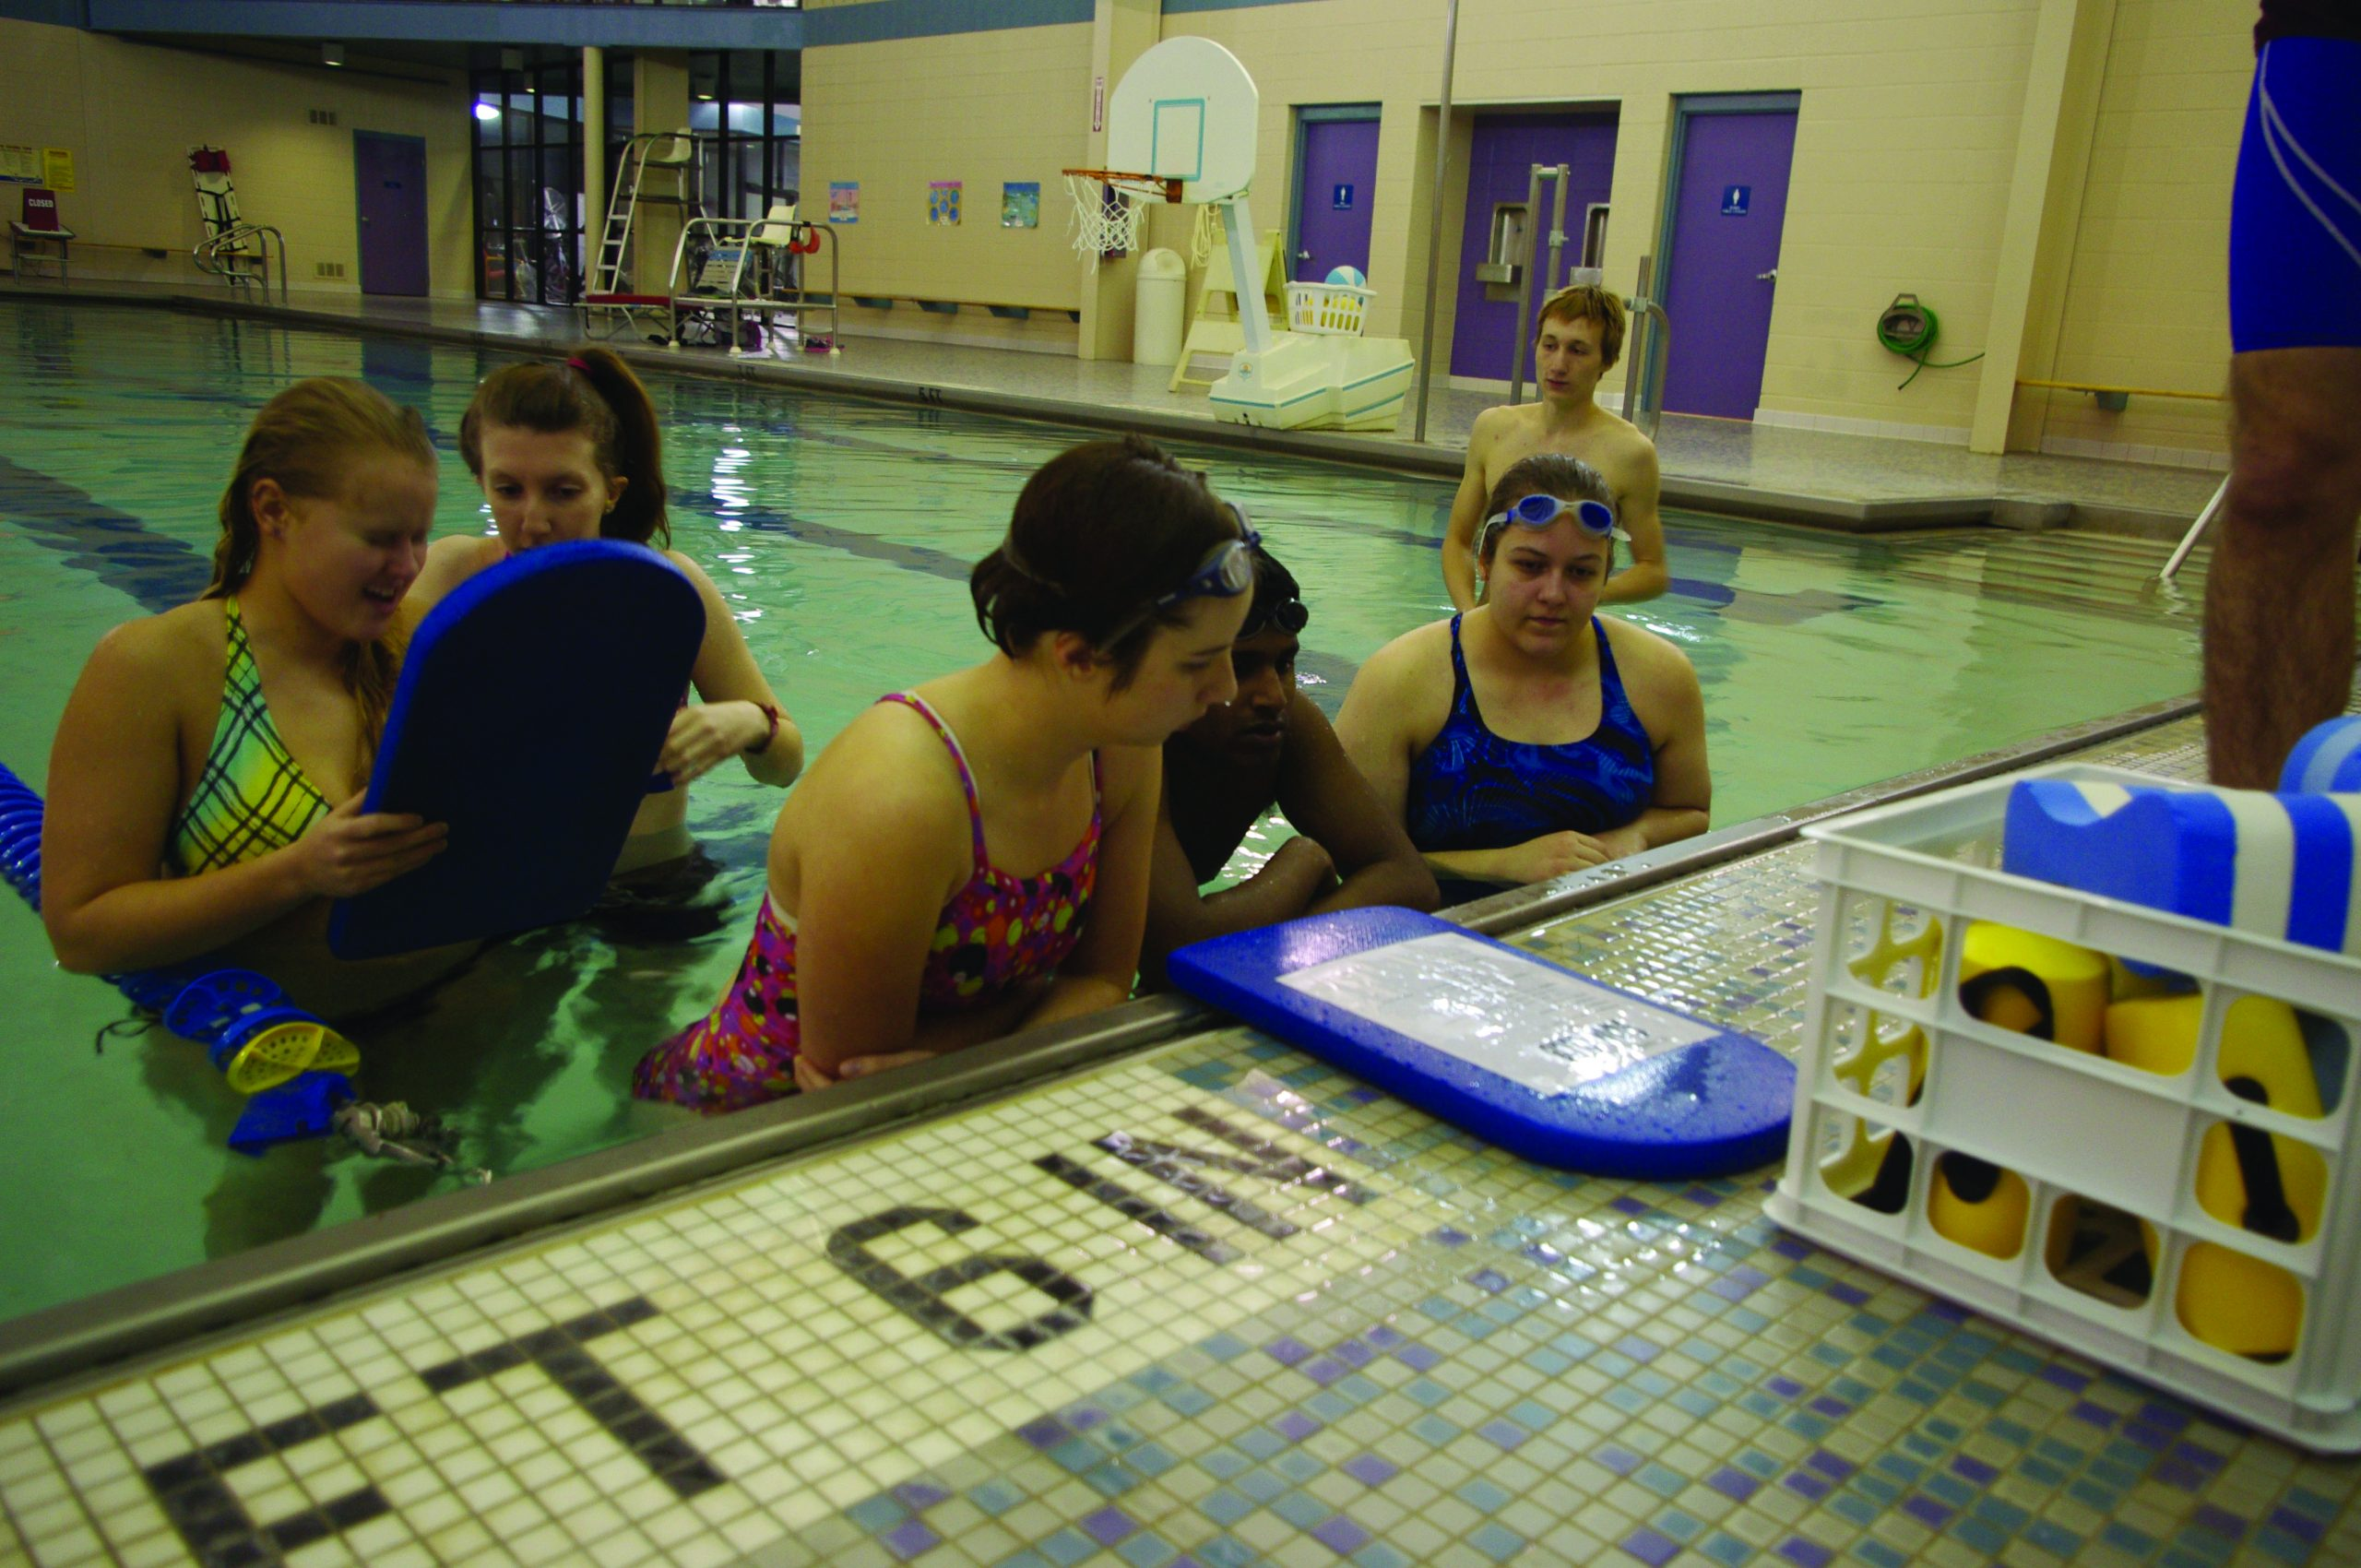 Six swimmers grab kickboards for a swim club workout in the RFC pool